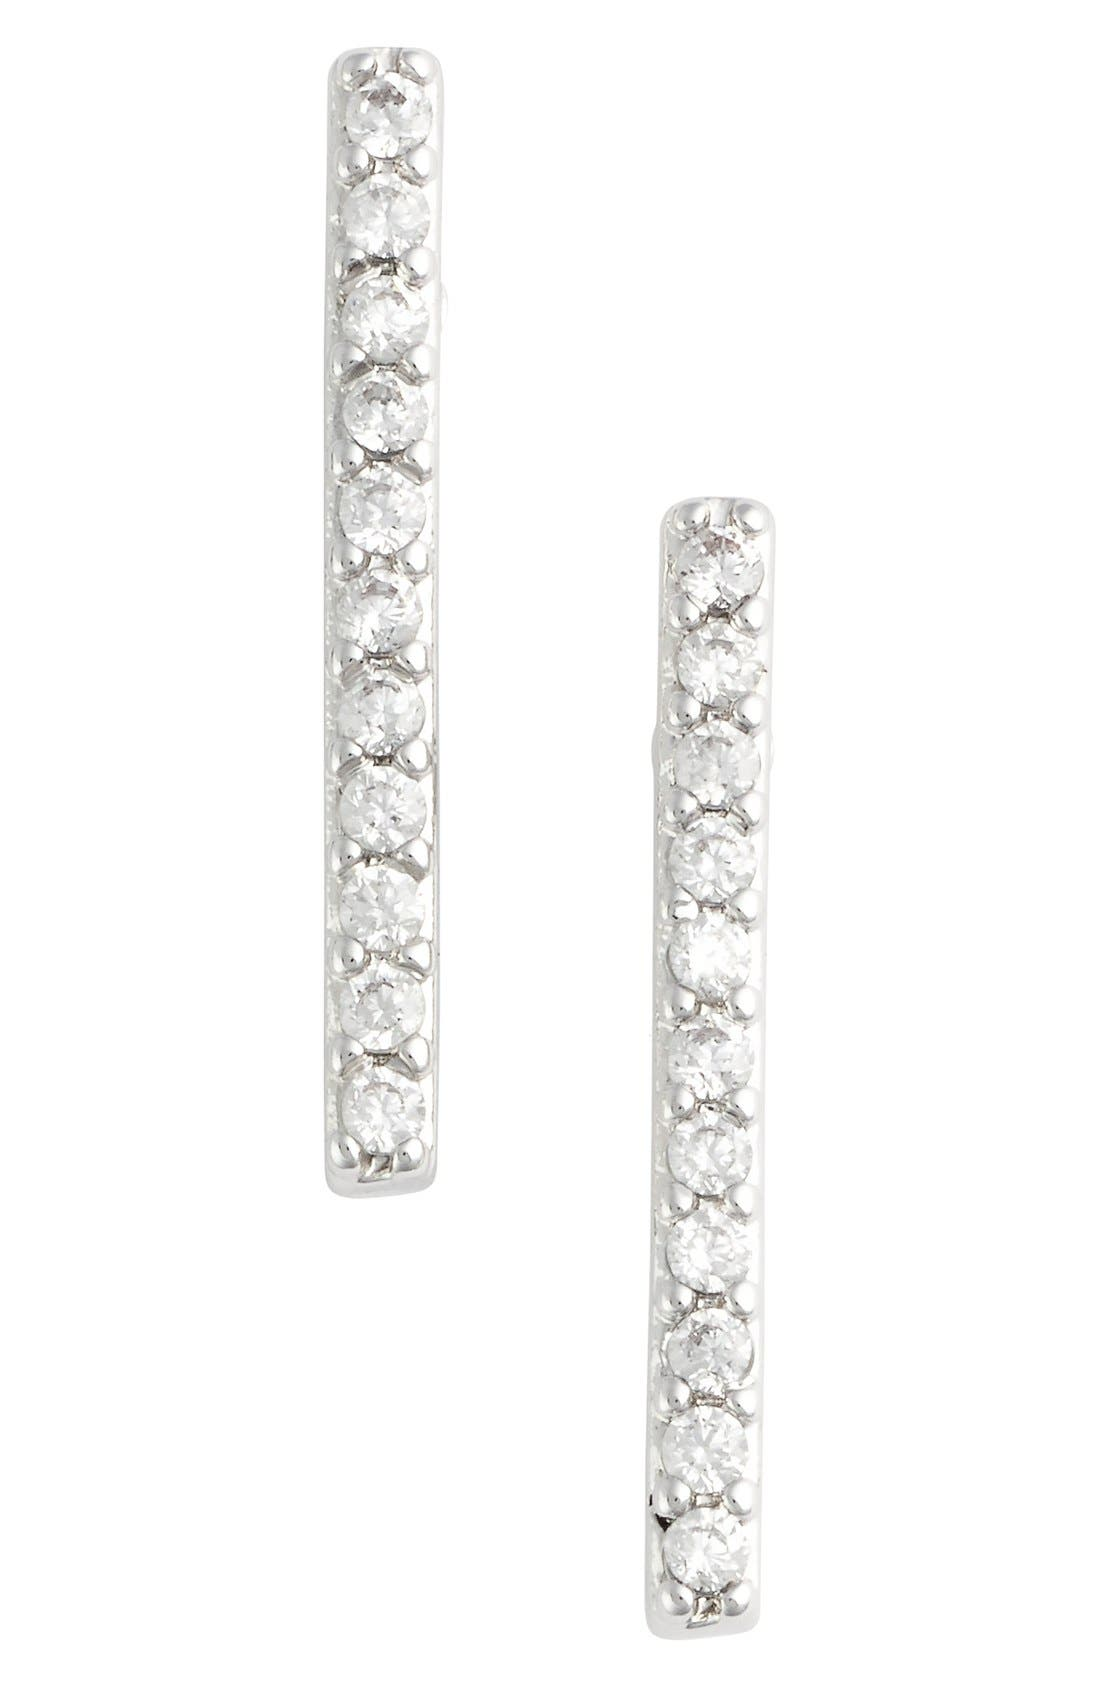 Jules Smith 'Micro' Pavé Bar Stud Earrings